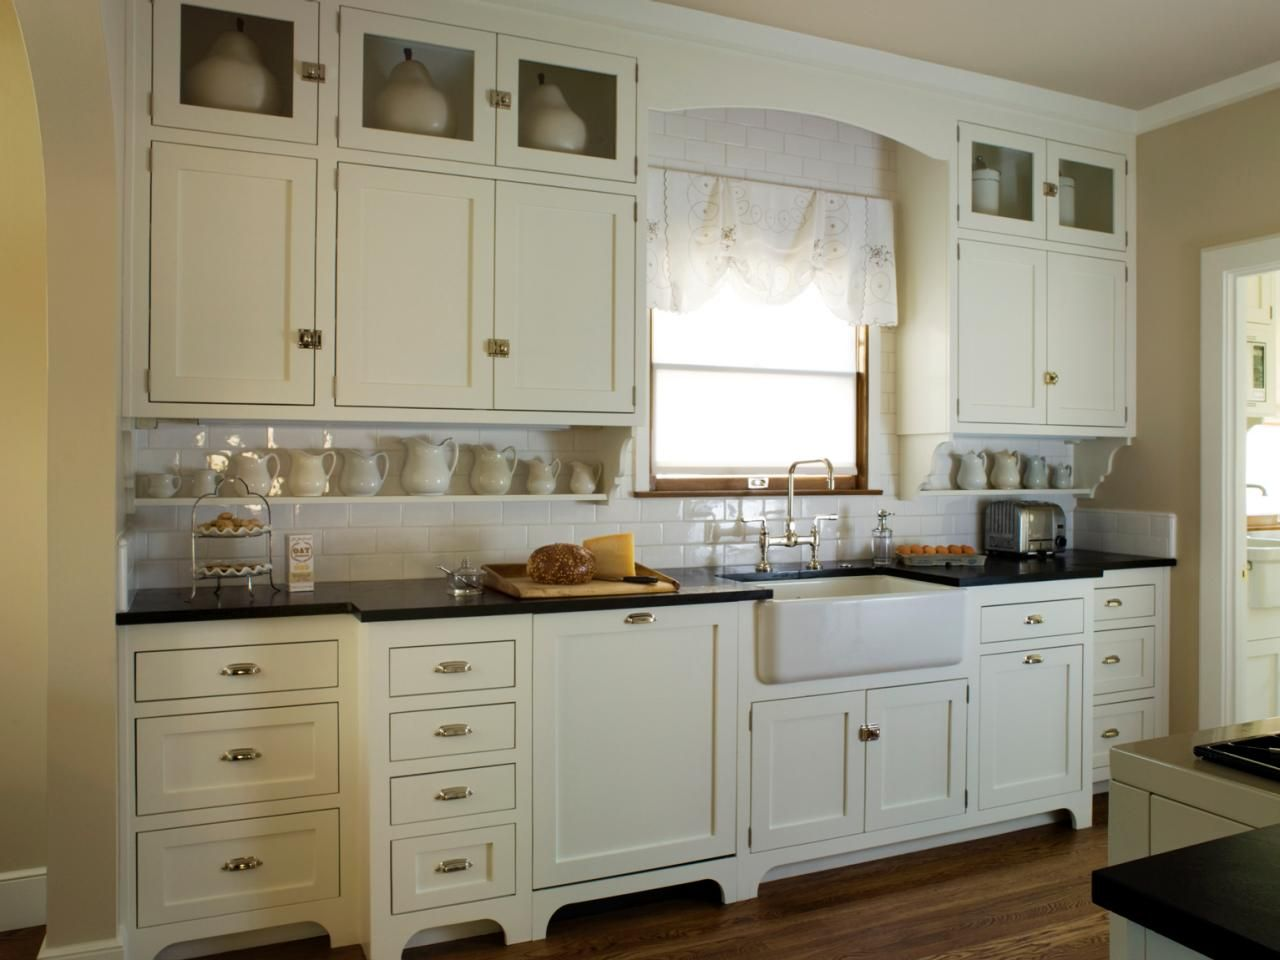 Antique White Kitchen Cabinets 27 antique white kitchen cabinets [amazing photos gallery | white